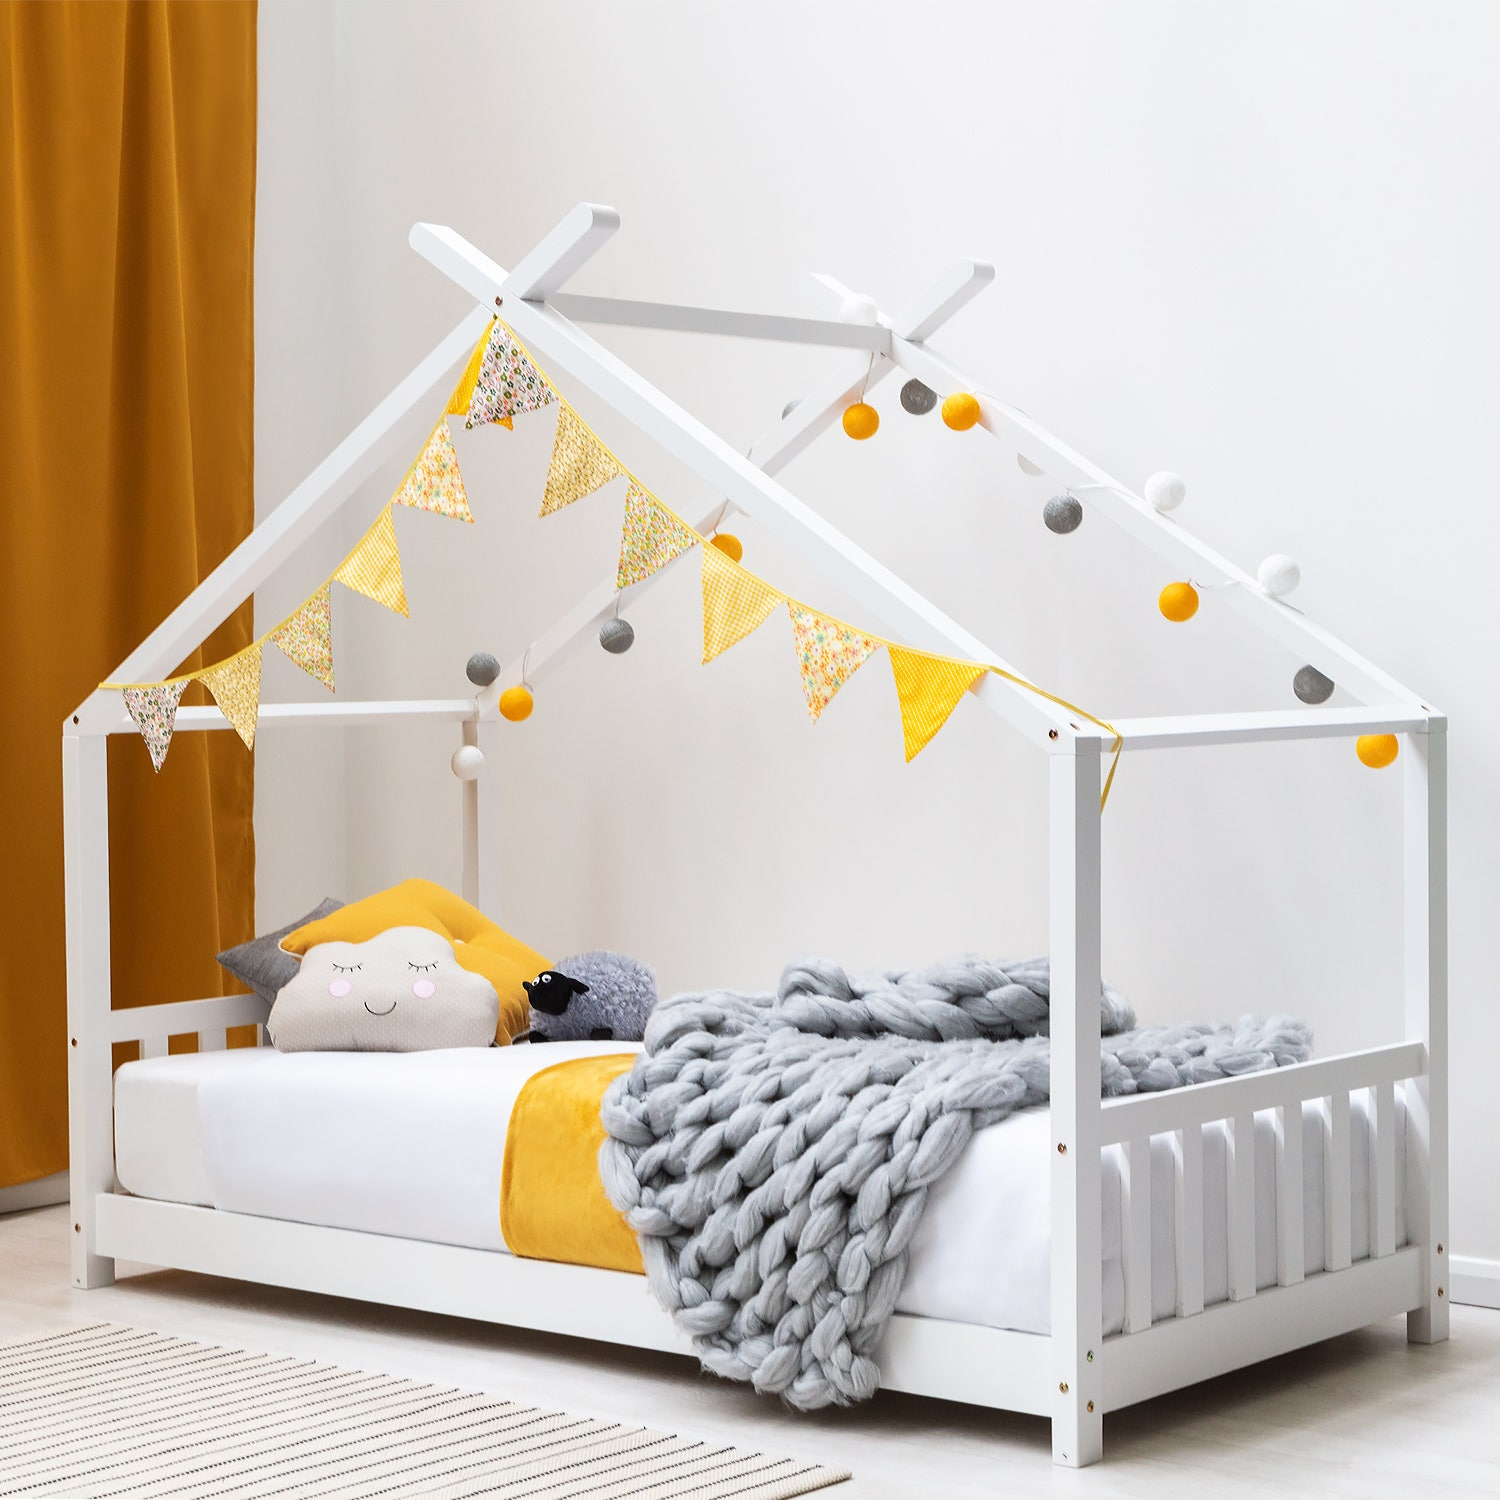 Tent Tipi Style Kids Childrens Bed 3ft Single Size White or Pine Solid Wood